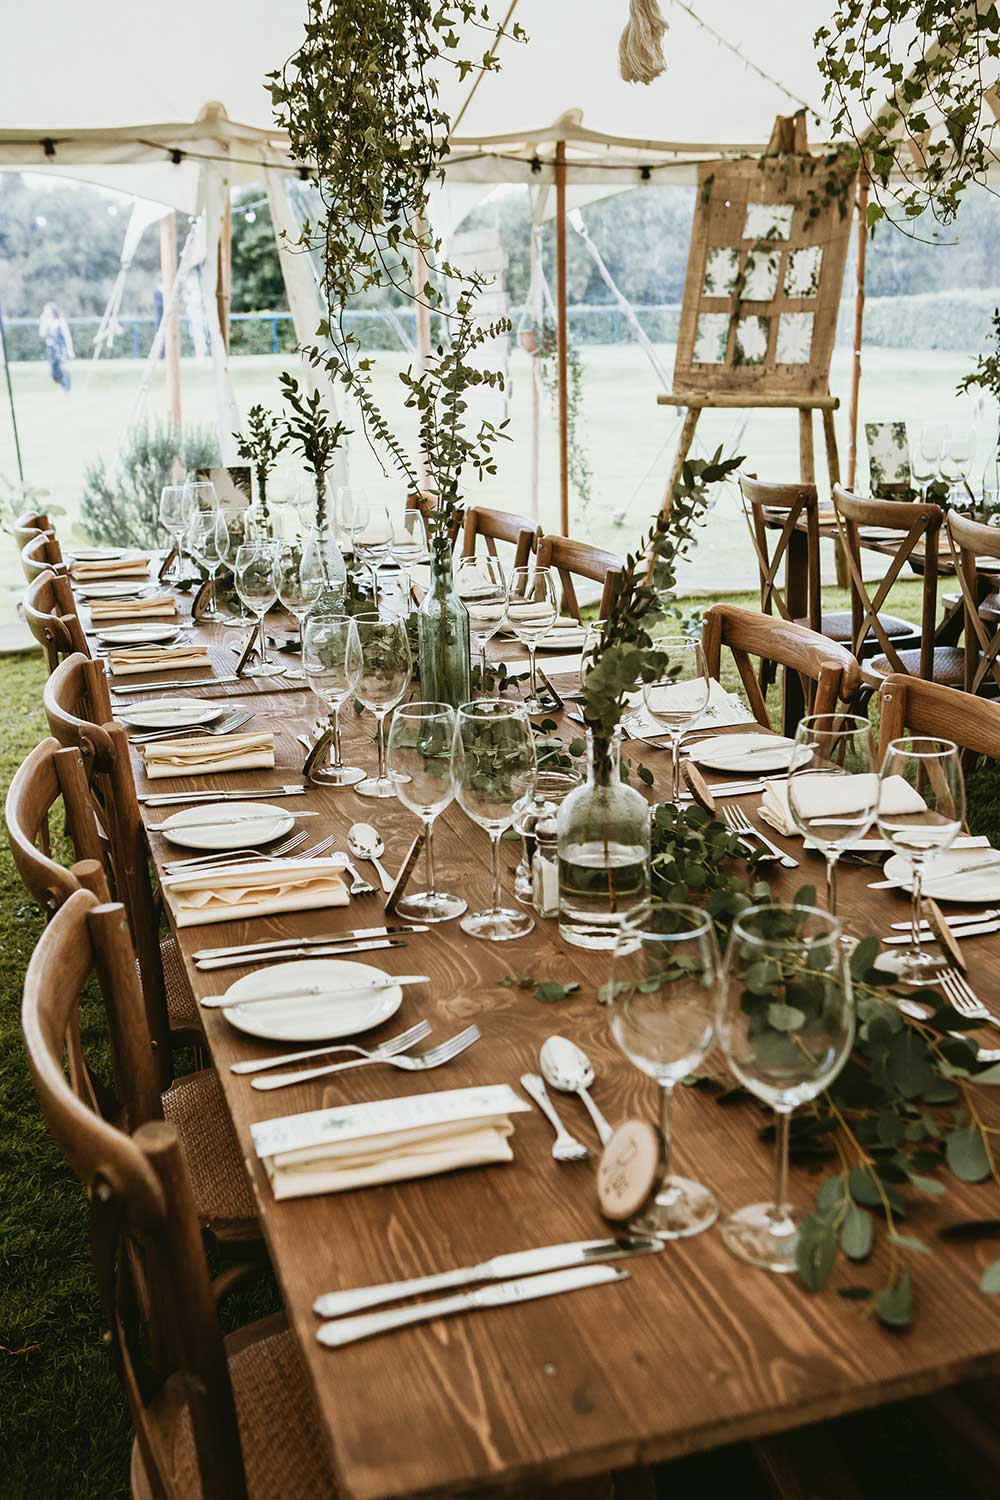 A wedding table within a marquee